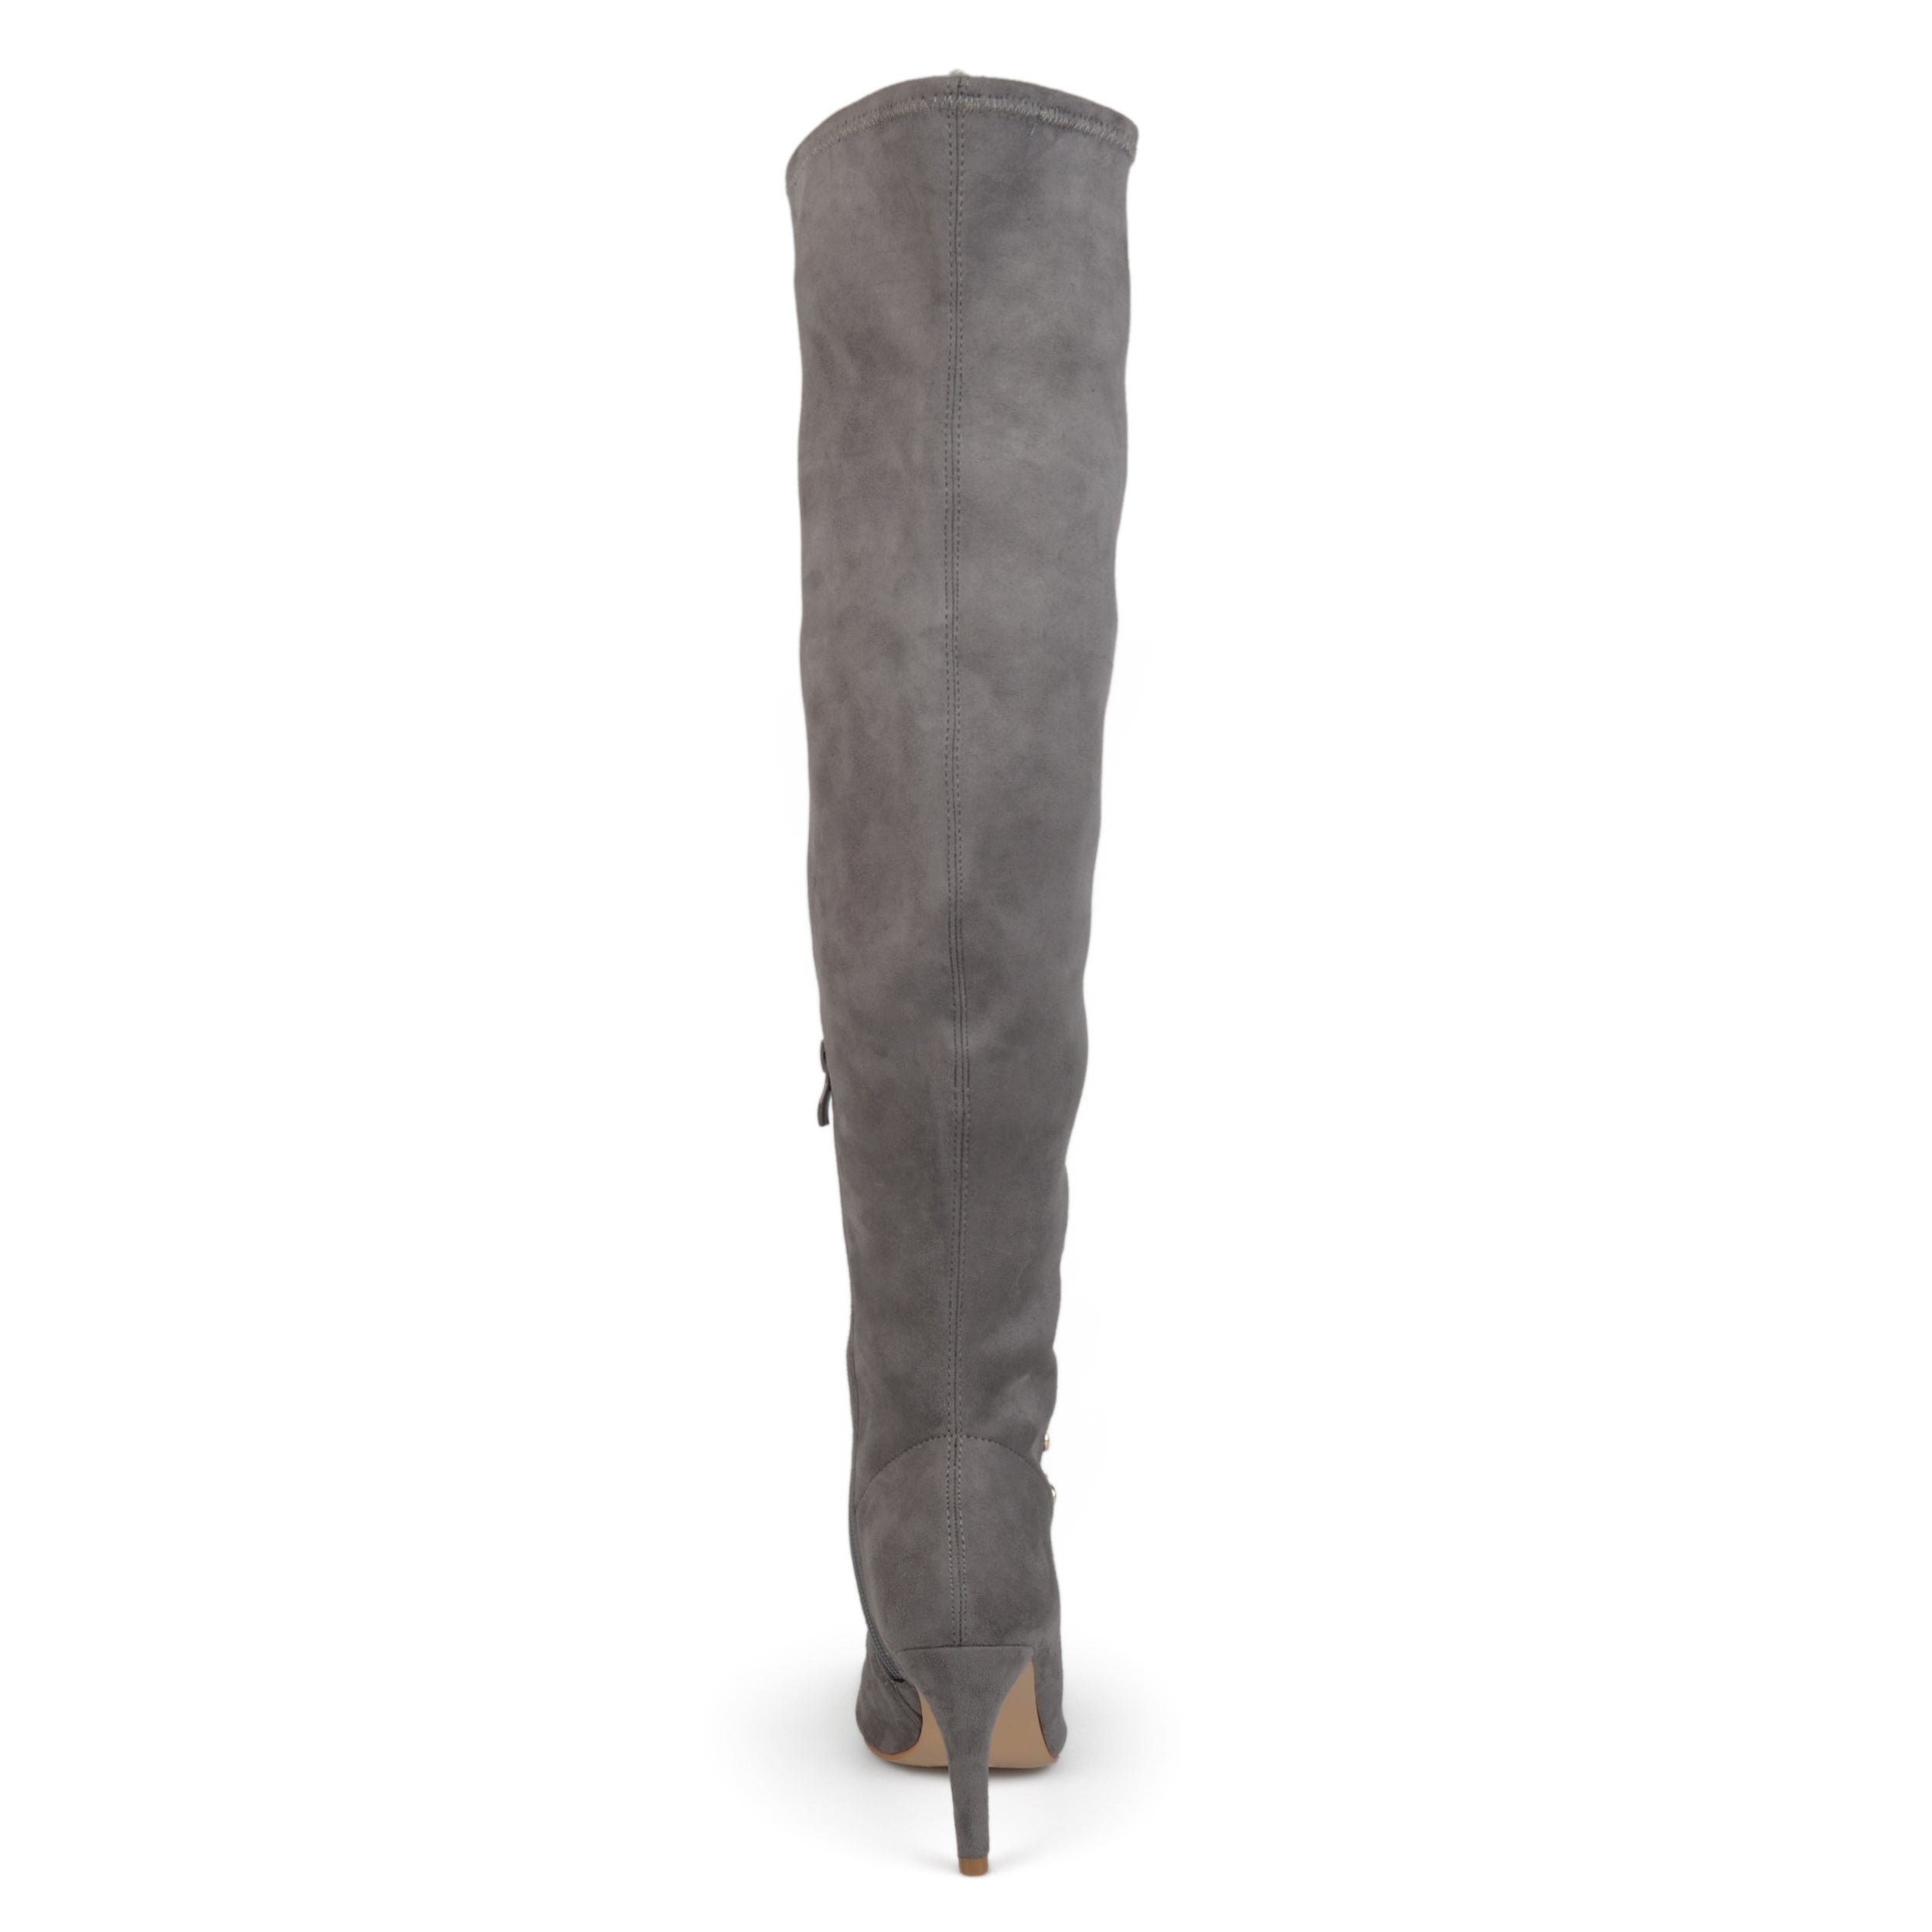 dffe92ba8faf00 Shop Journee Collection Women's 'Trill' Regular and Wide Calf Boots - Free  Shipping Today - Overstock - 17011774